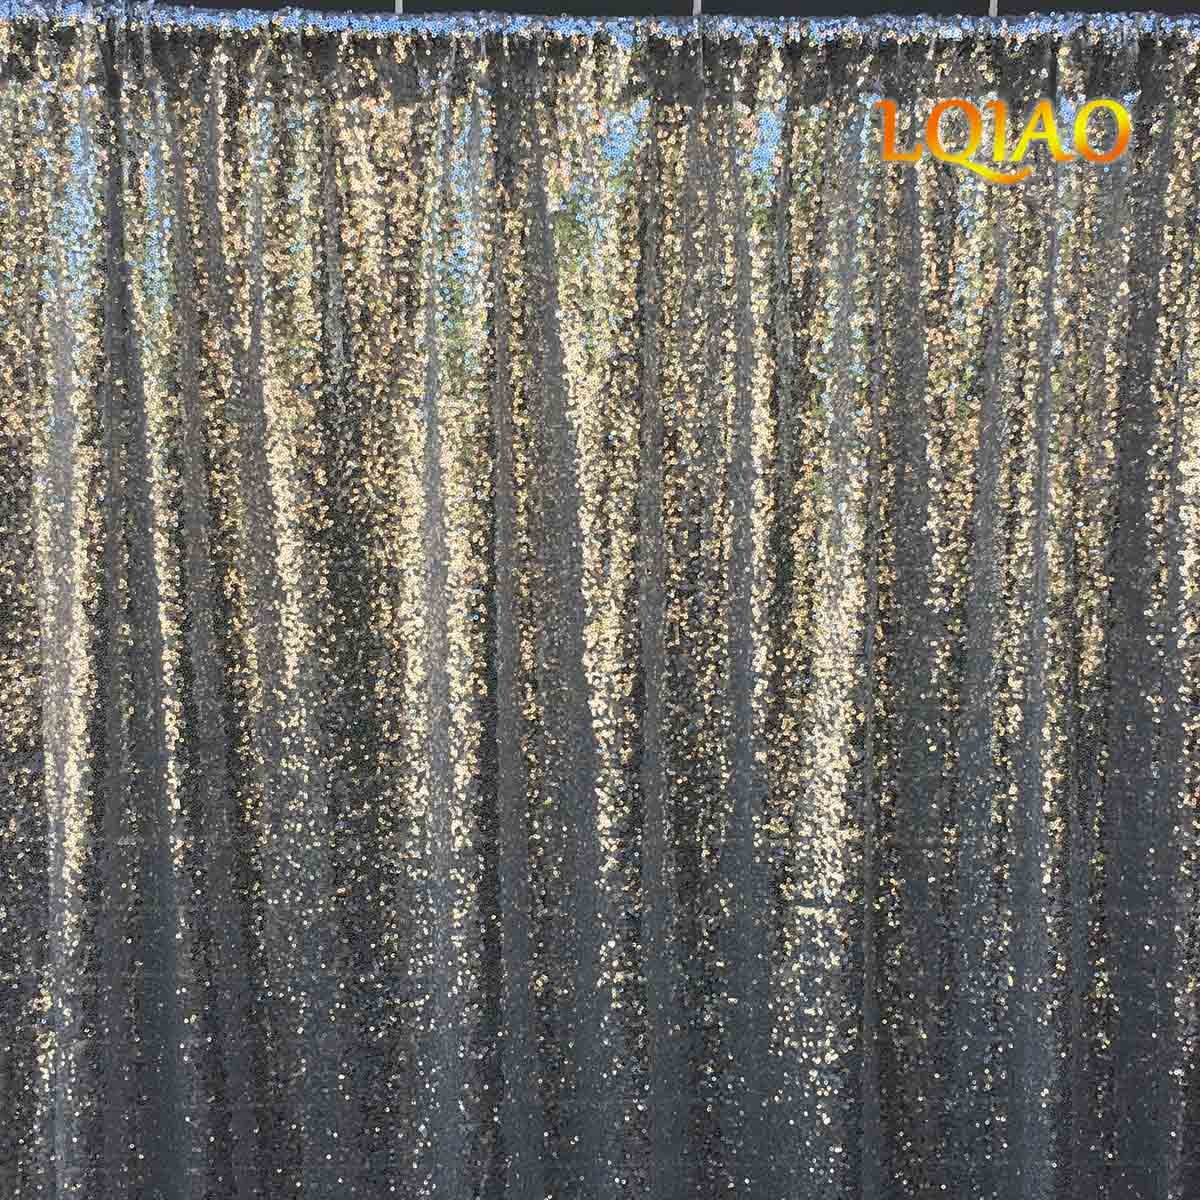 LQIAO 20FTx10FT-600CMx300CM Silver Sequin Backdrops,Party Wedding Photo Booth Backdrop Decoration,Sequin curtains,Drape,Sequin panels by LQIAO